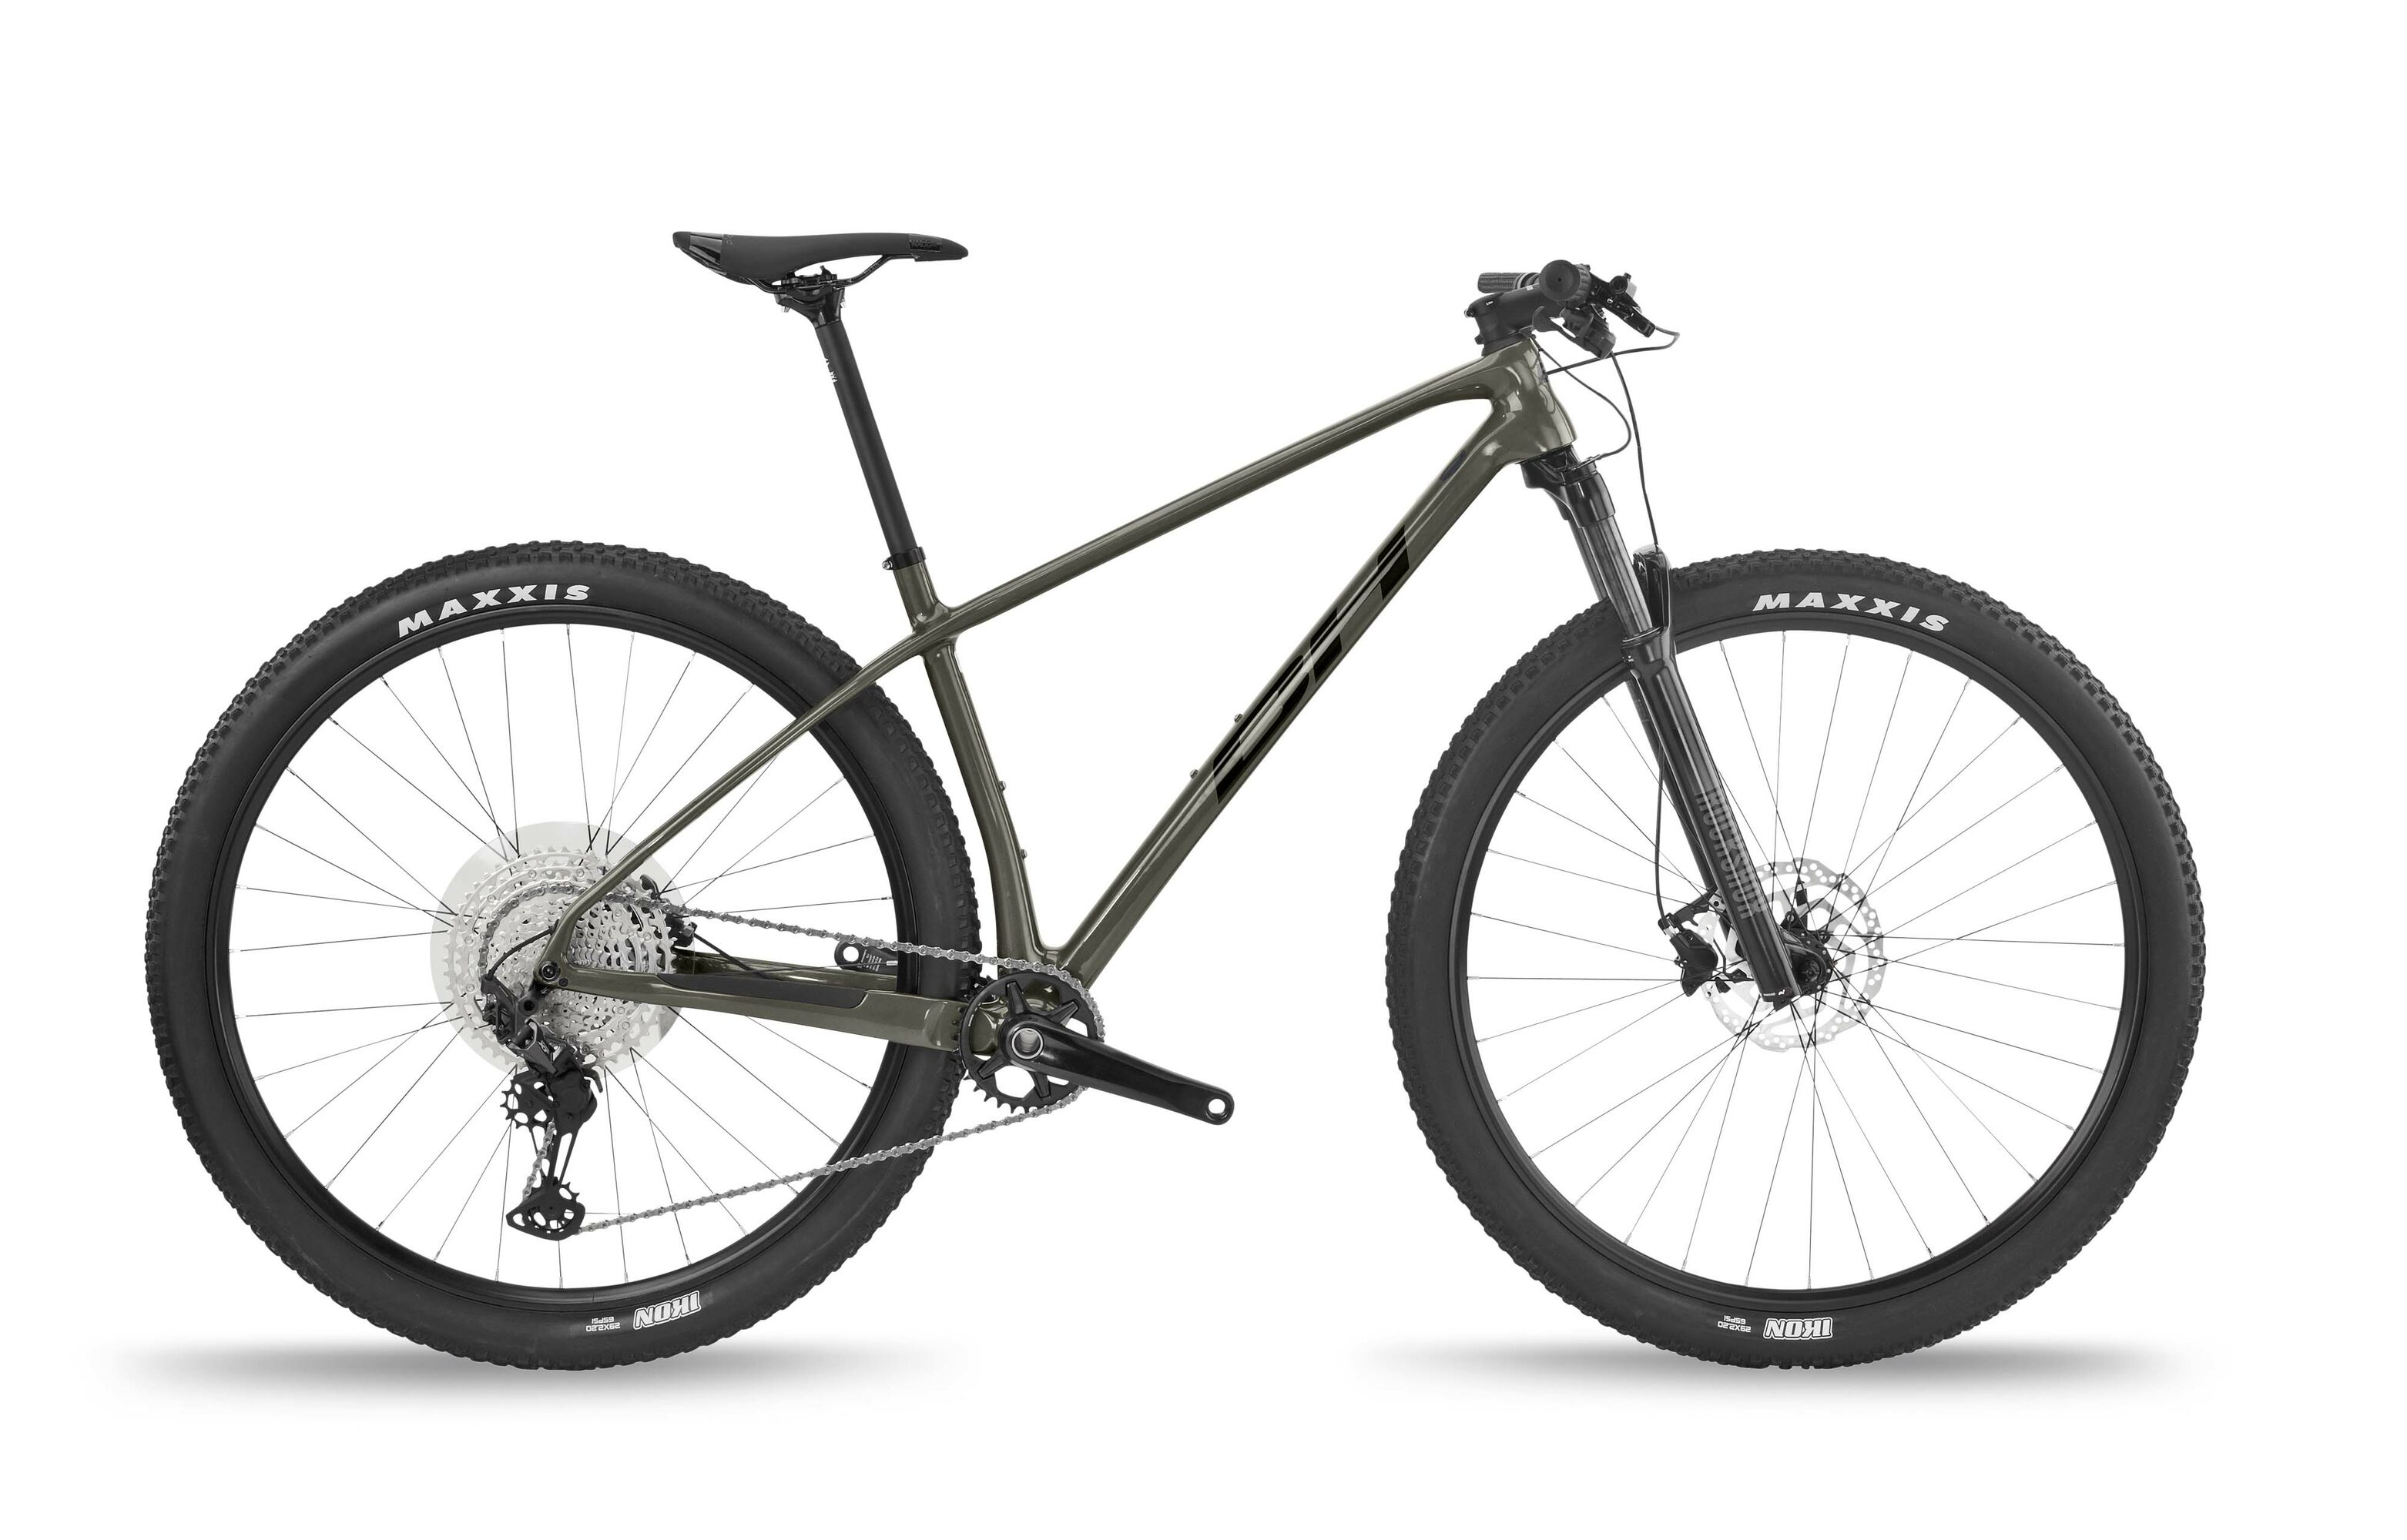 ULTIMATE RC 6.5 - BH Bikes